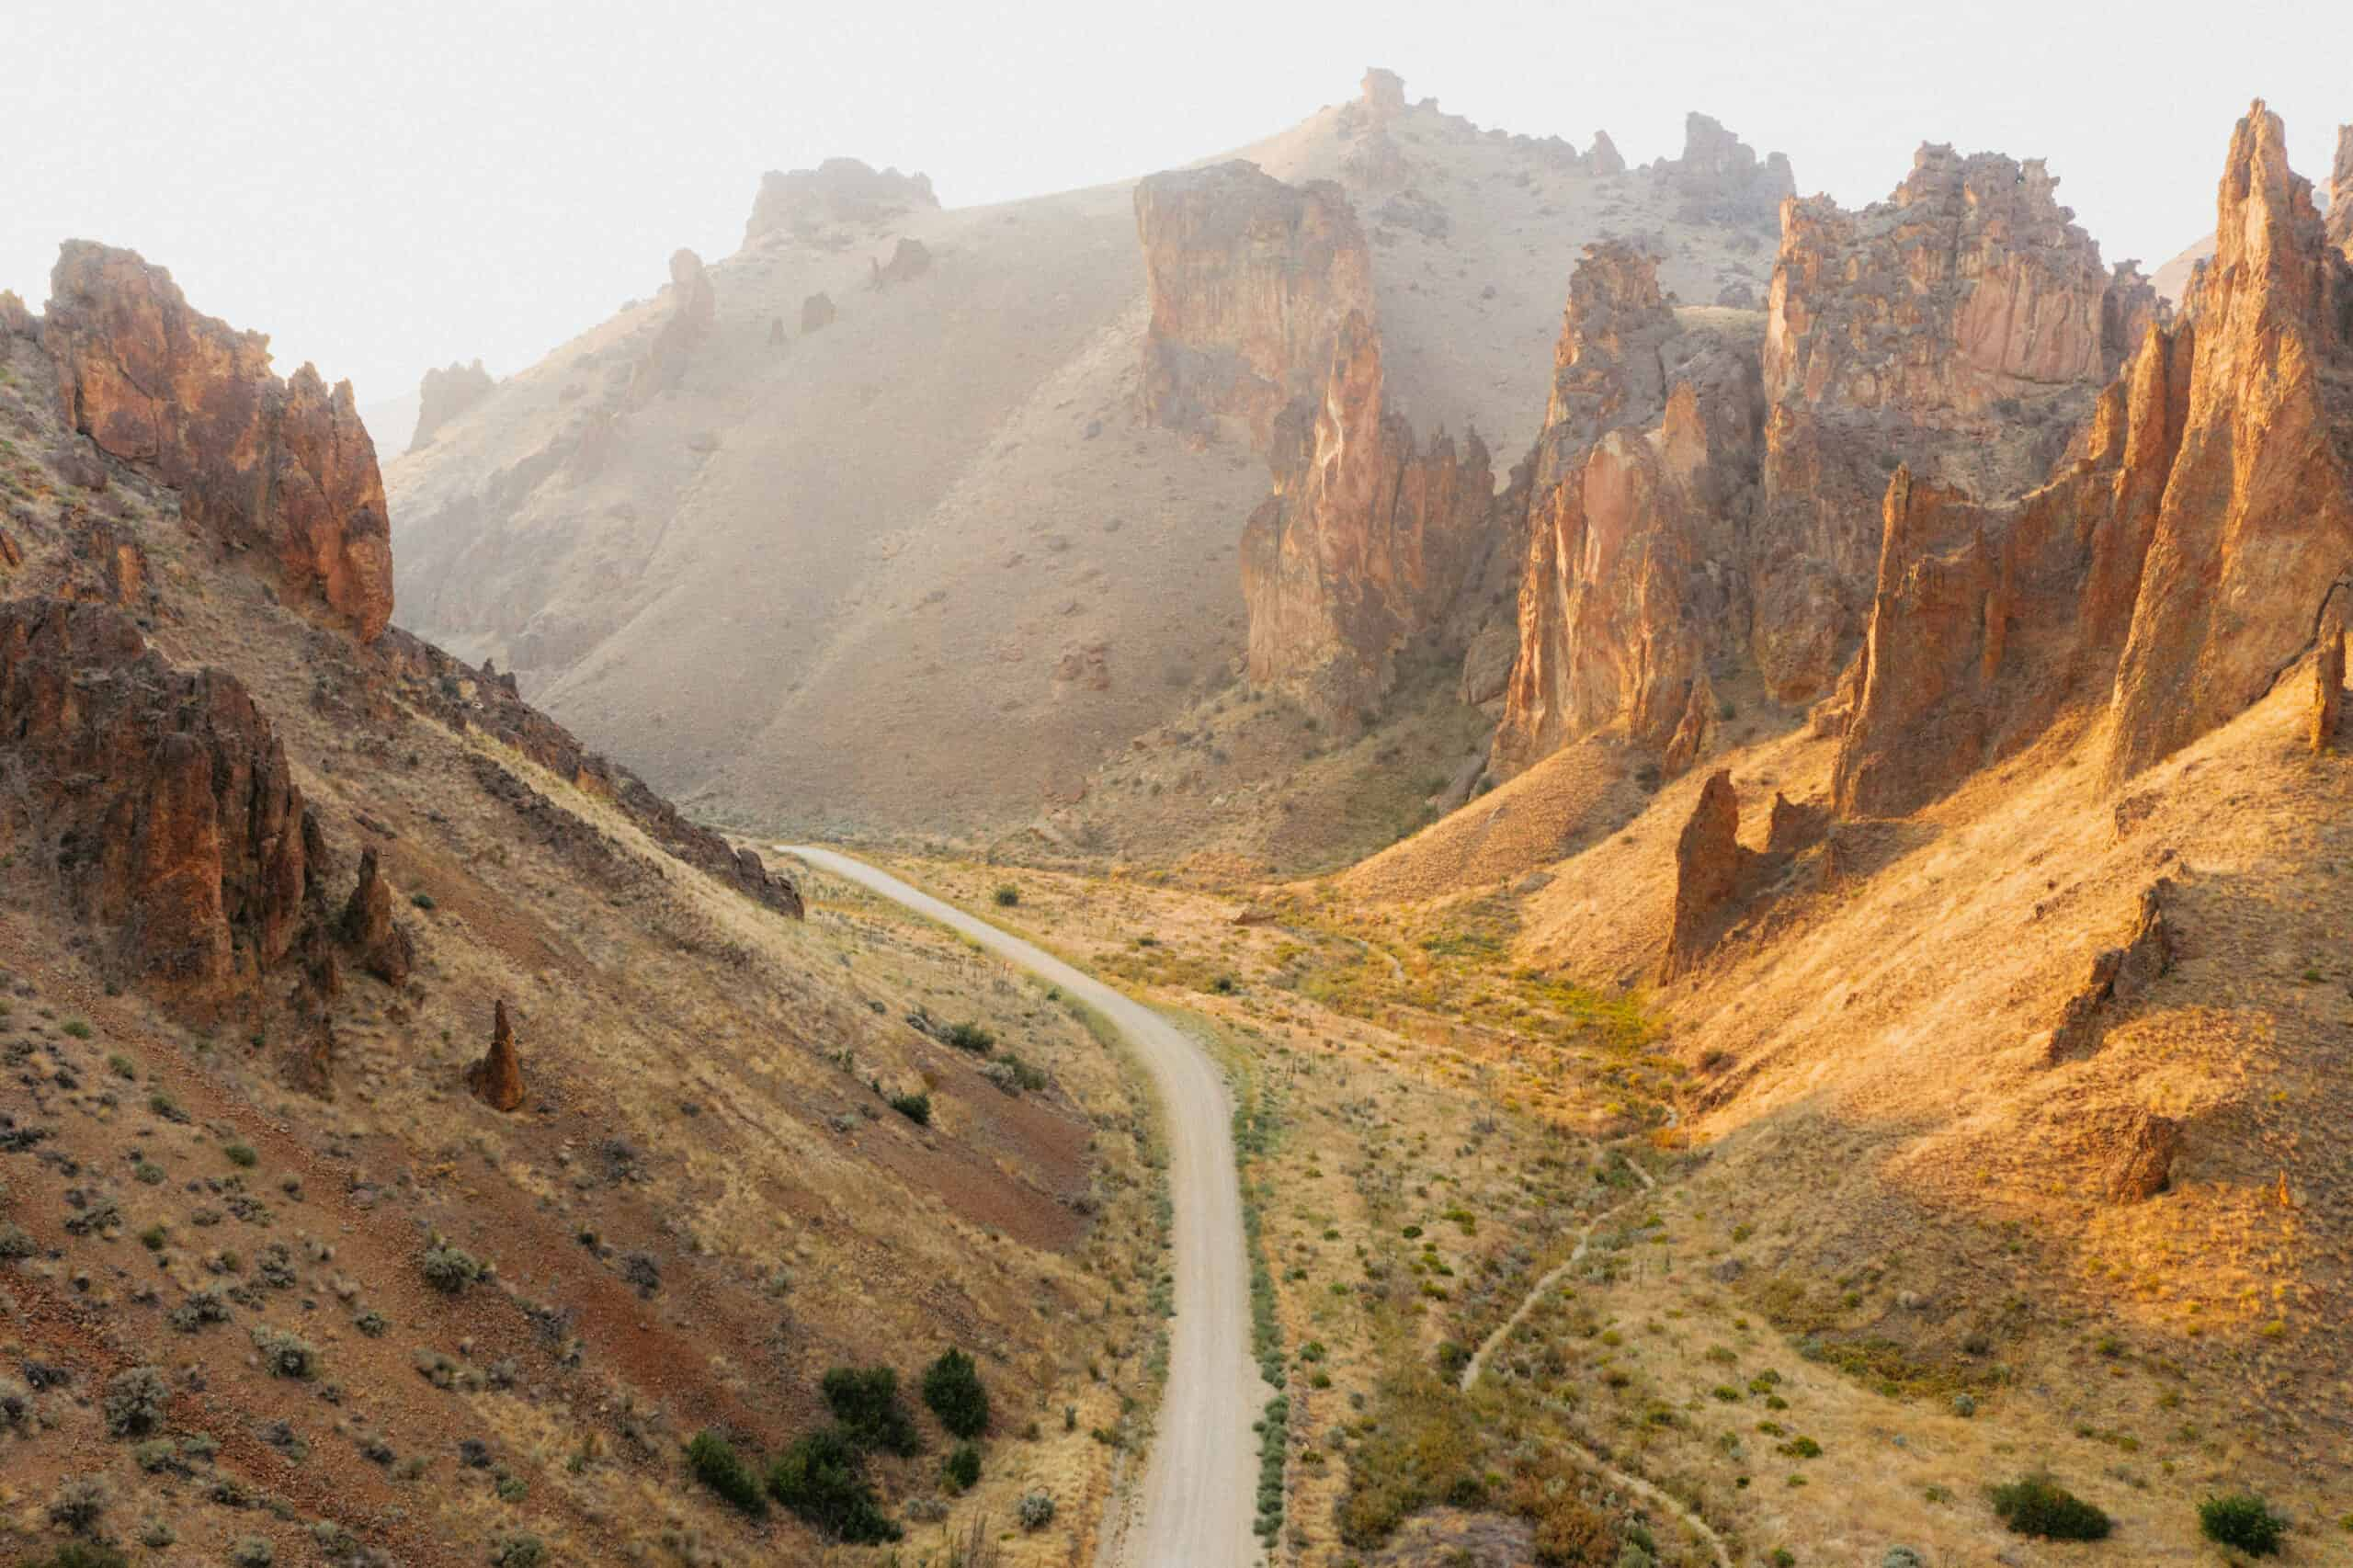 The Perfect Eastern Oregon Road Trip Itinerary To Stoke Your Desert-Loving Spirit